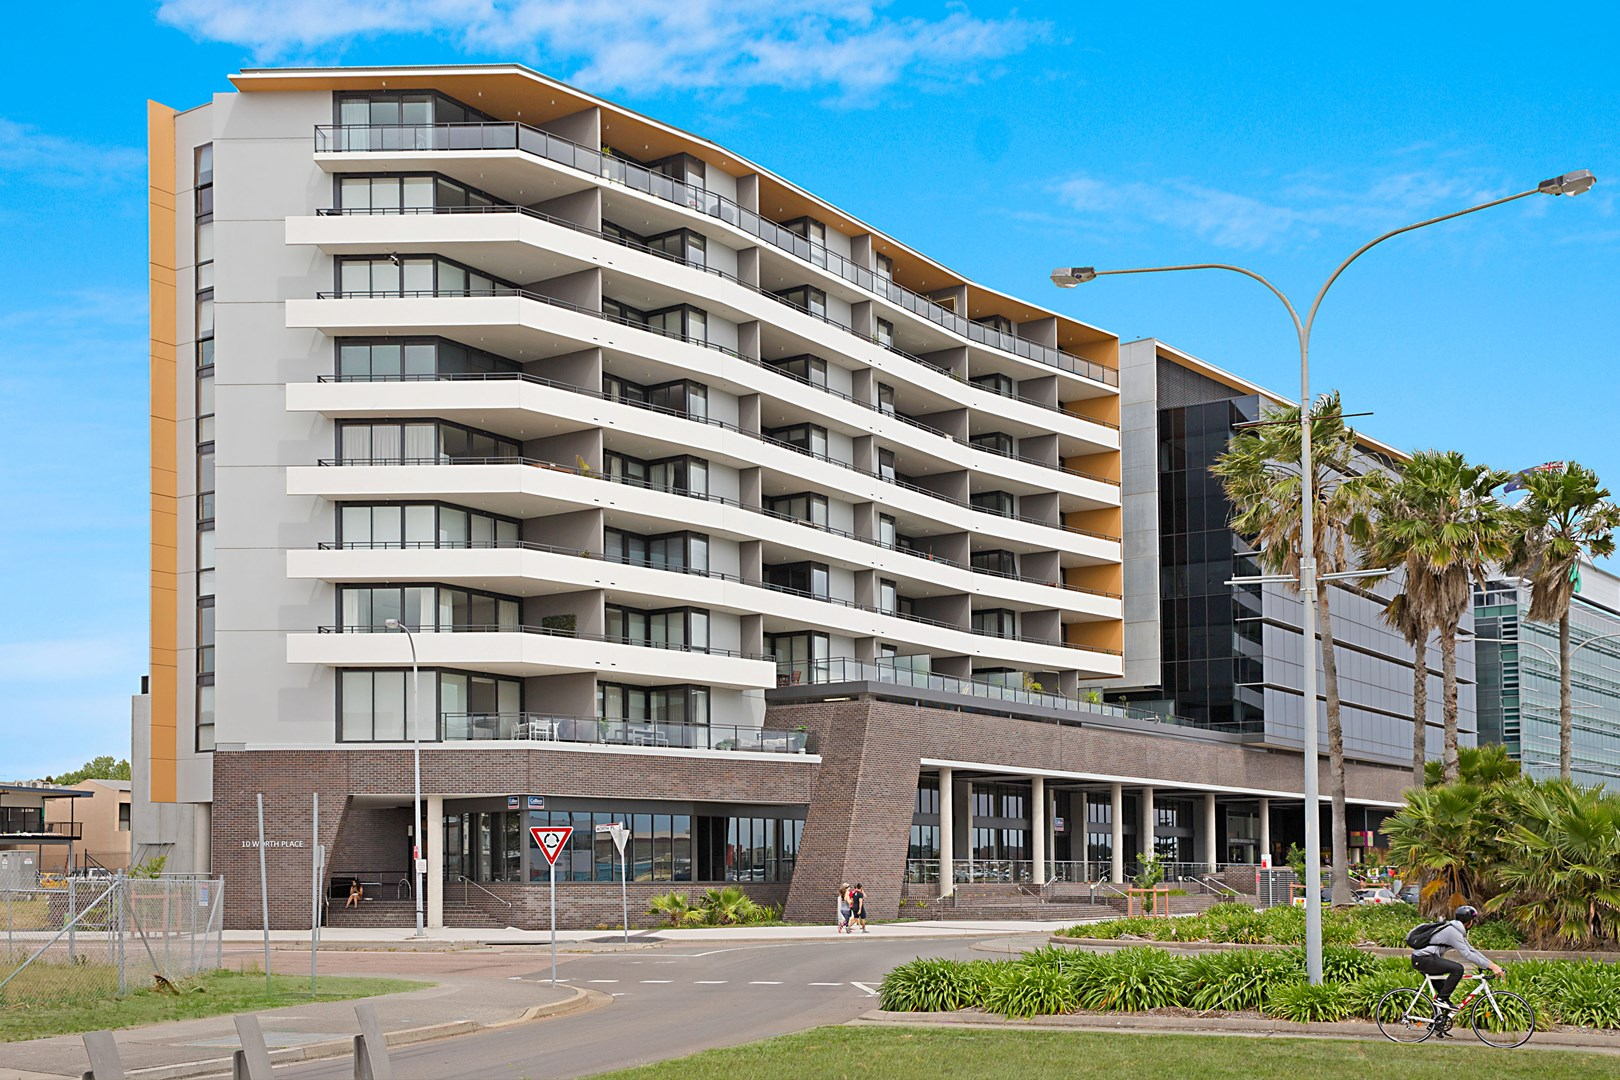 3 Bedroom Apartments Newcastle Nsw For Sale Bedroom Review Design